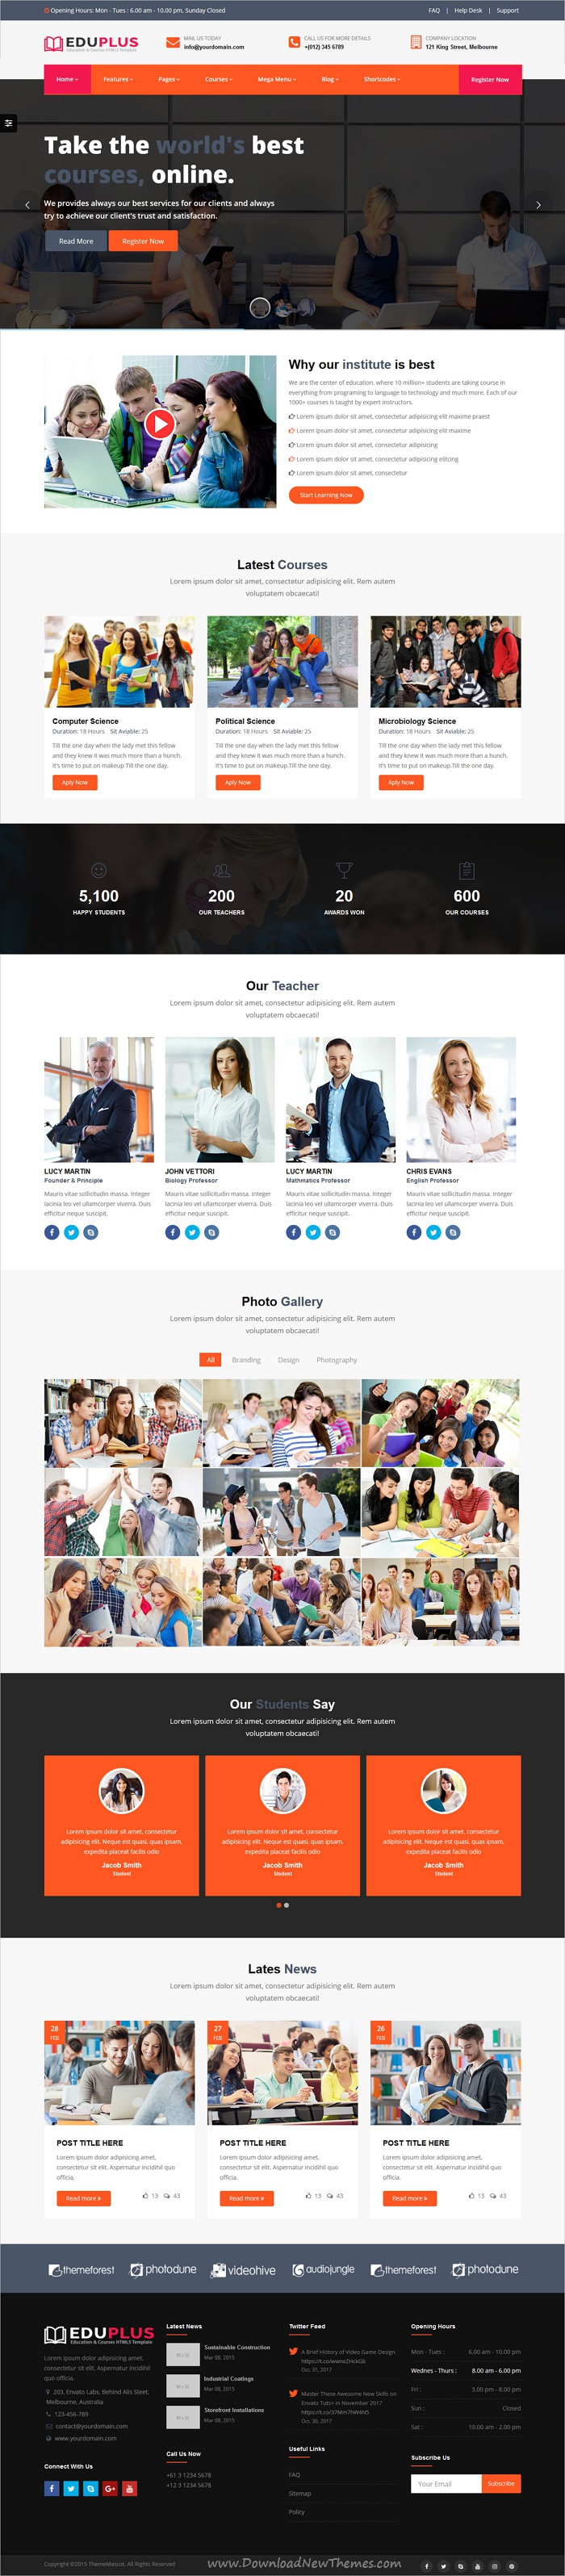 Education Plus Is Clean And Modern Design Responsive Html5 Template For Lms Training Center Course Hub College School And Kinder Education Templates Education Web Design